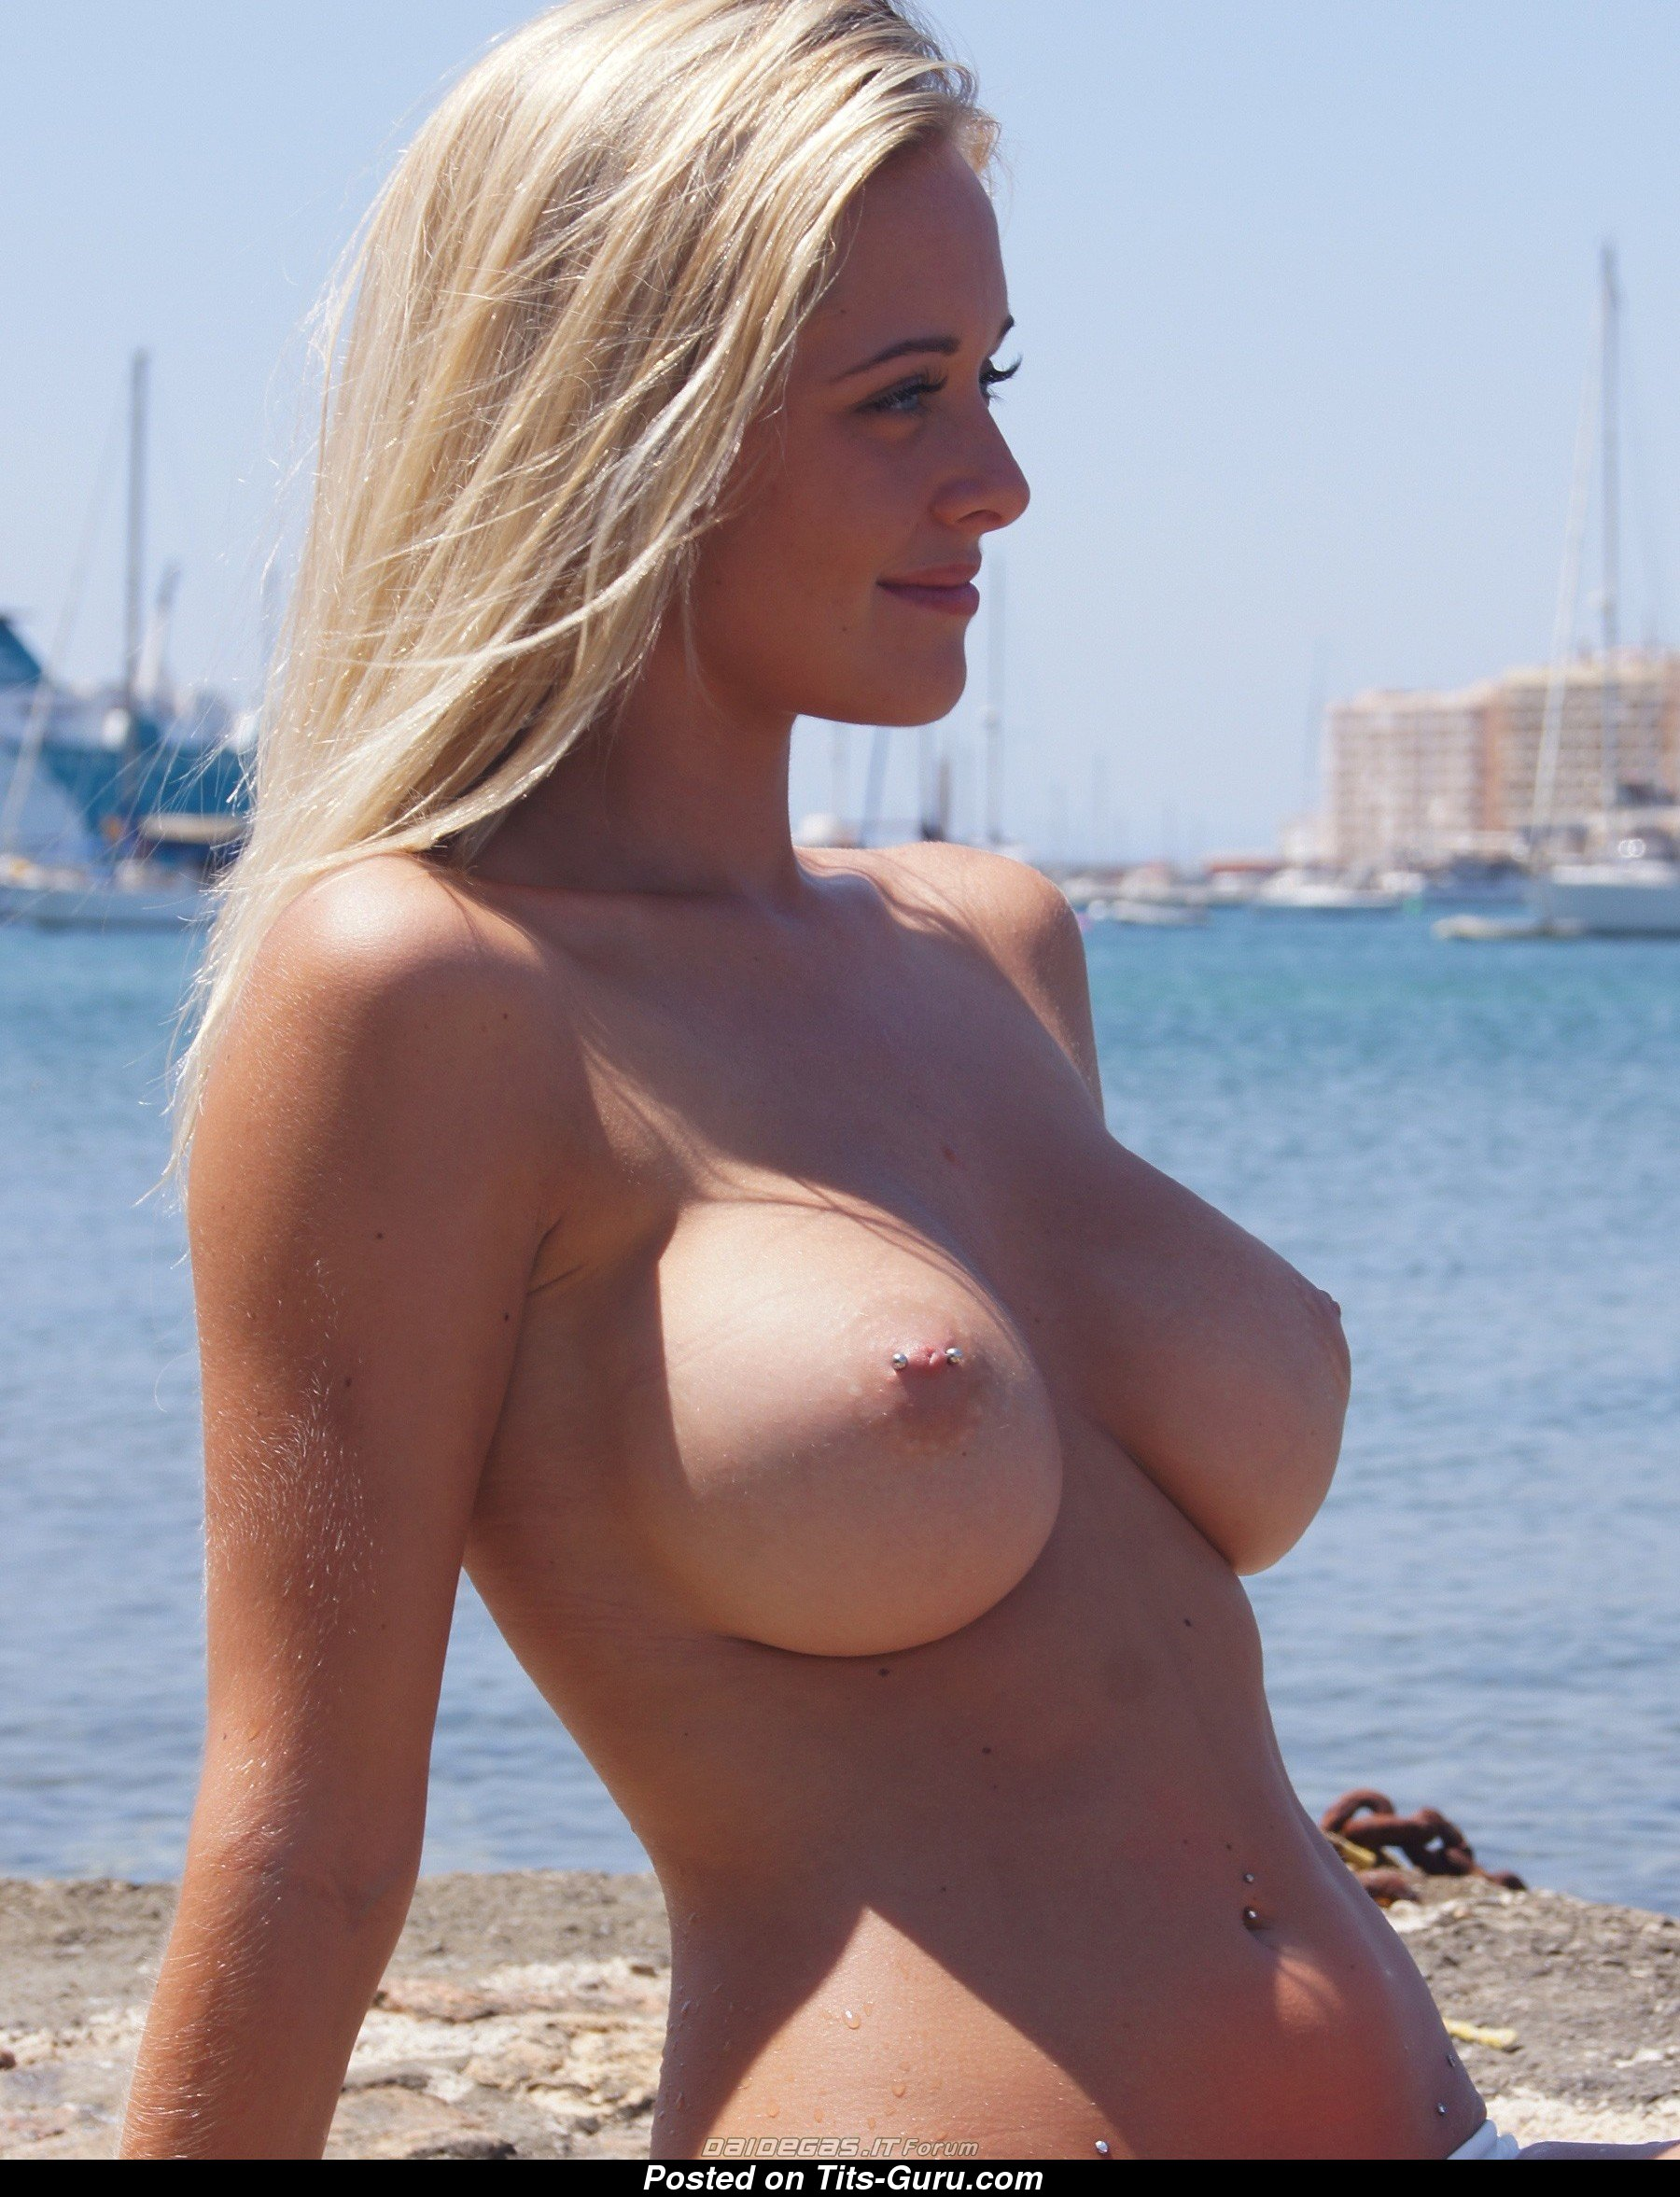 Wet Blonde With Bare Natural C Size Tittes Porn Photo 18 -9444